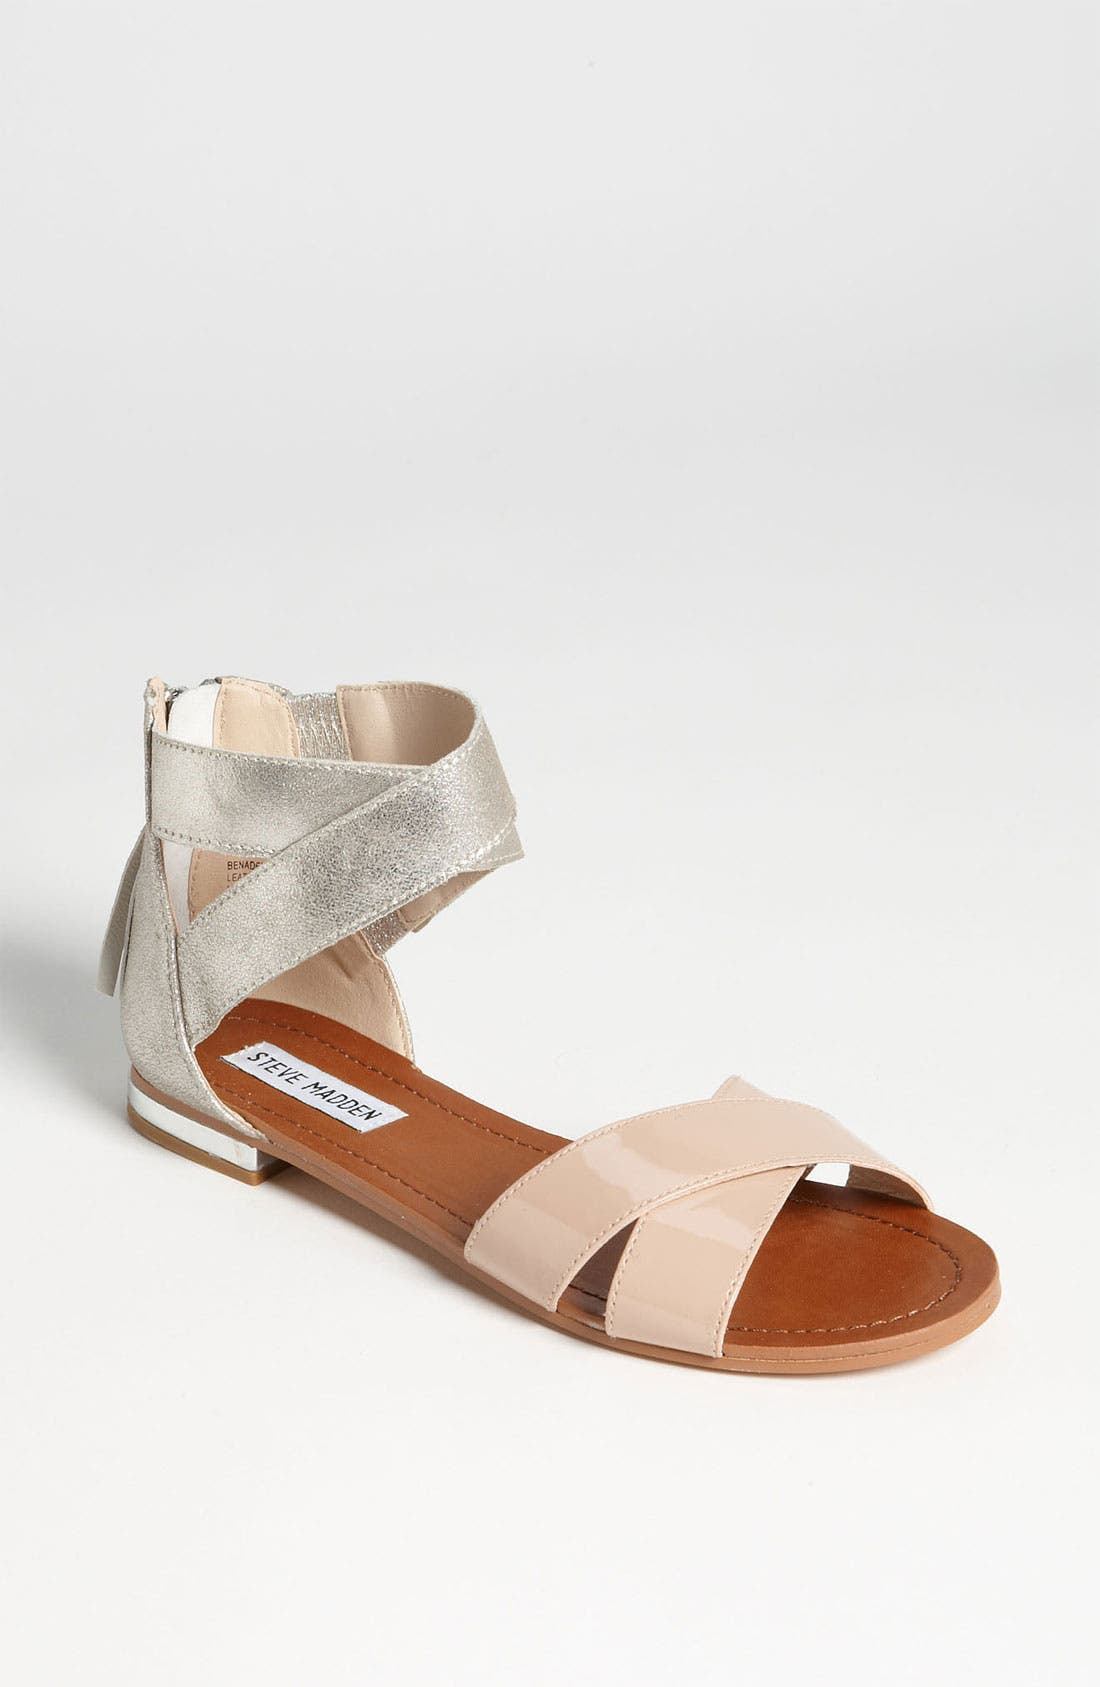 Alternate Image 1 Selected - Steve Madden 'Benadet' Sandal